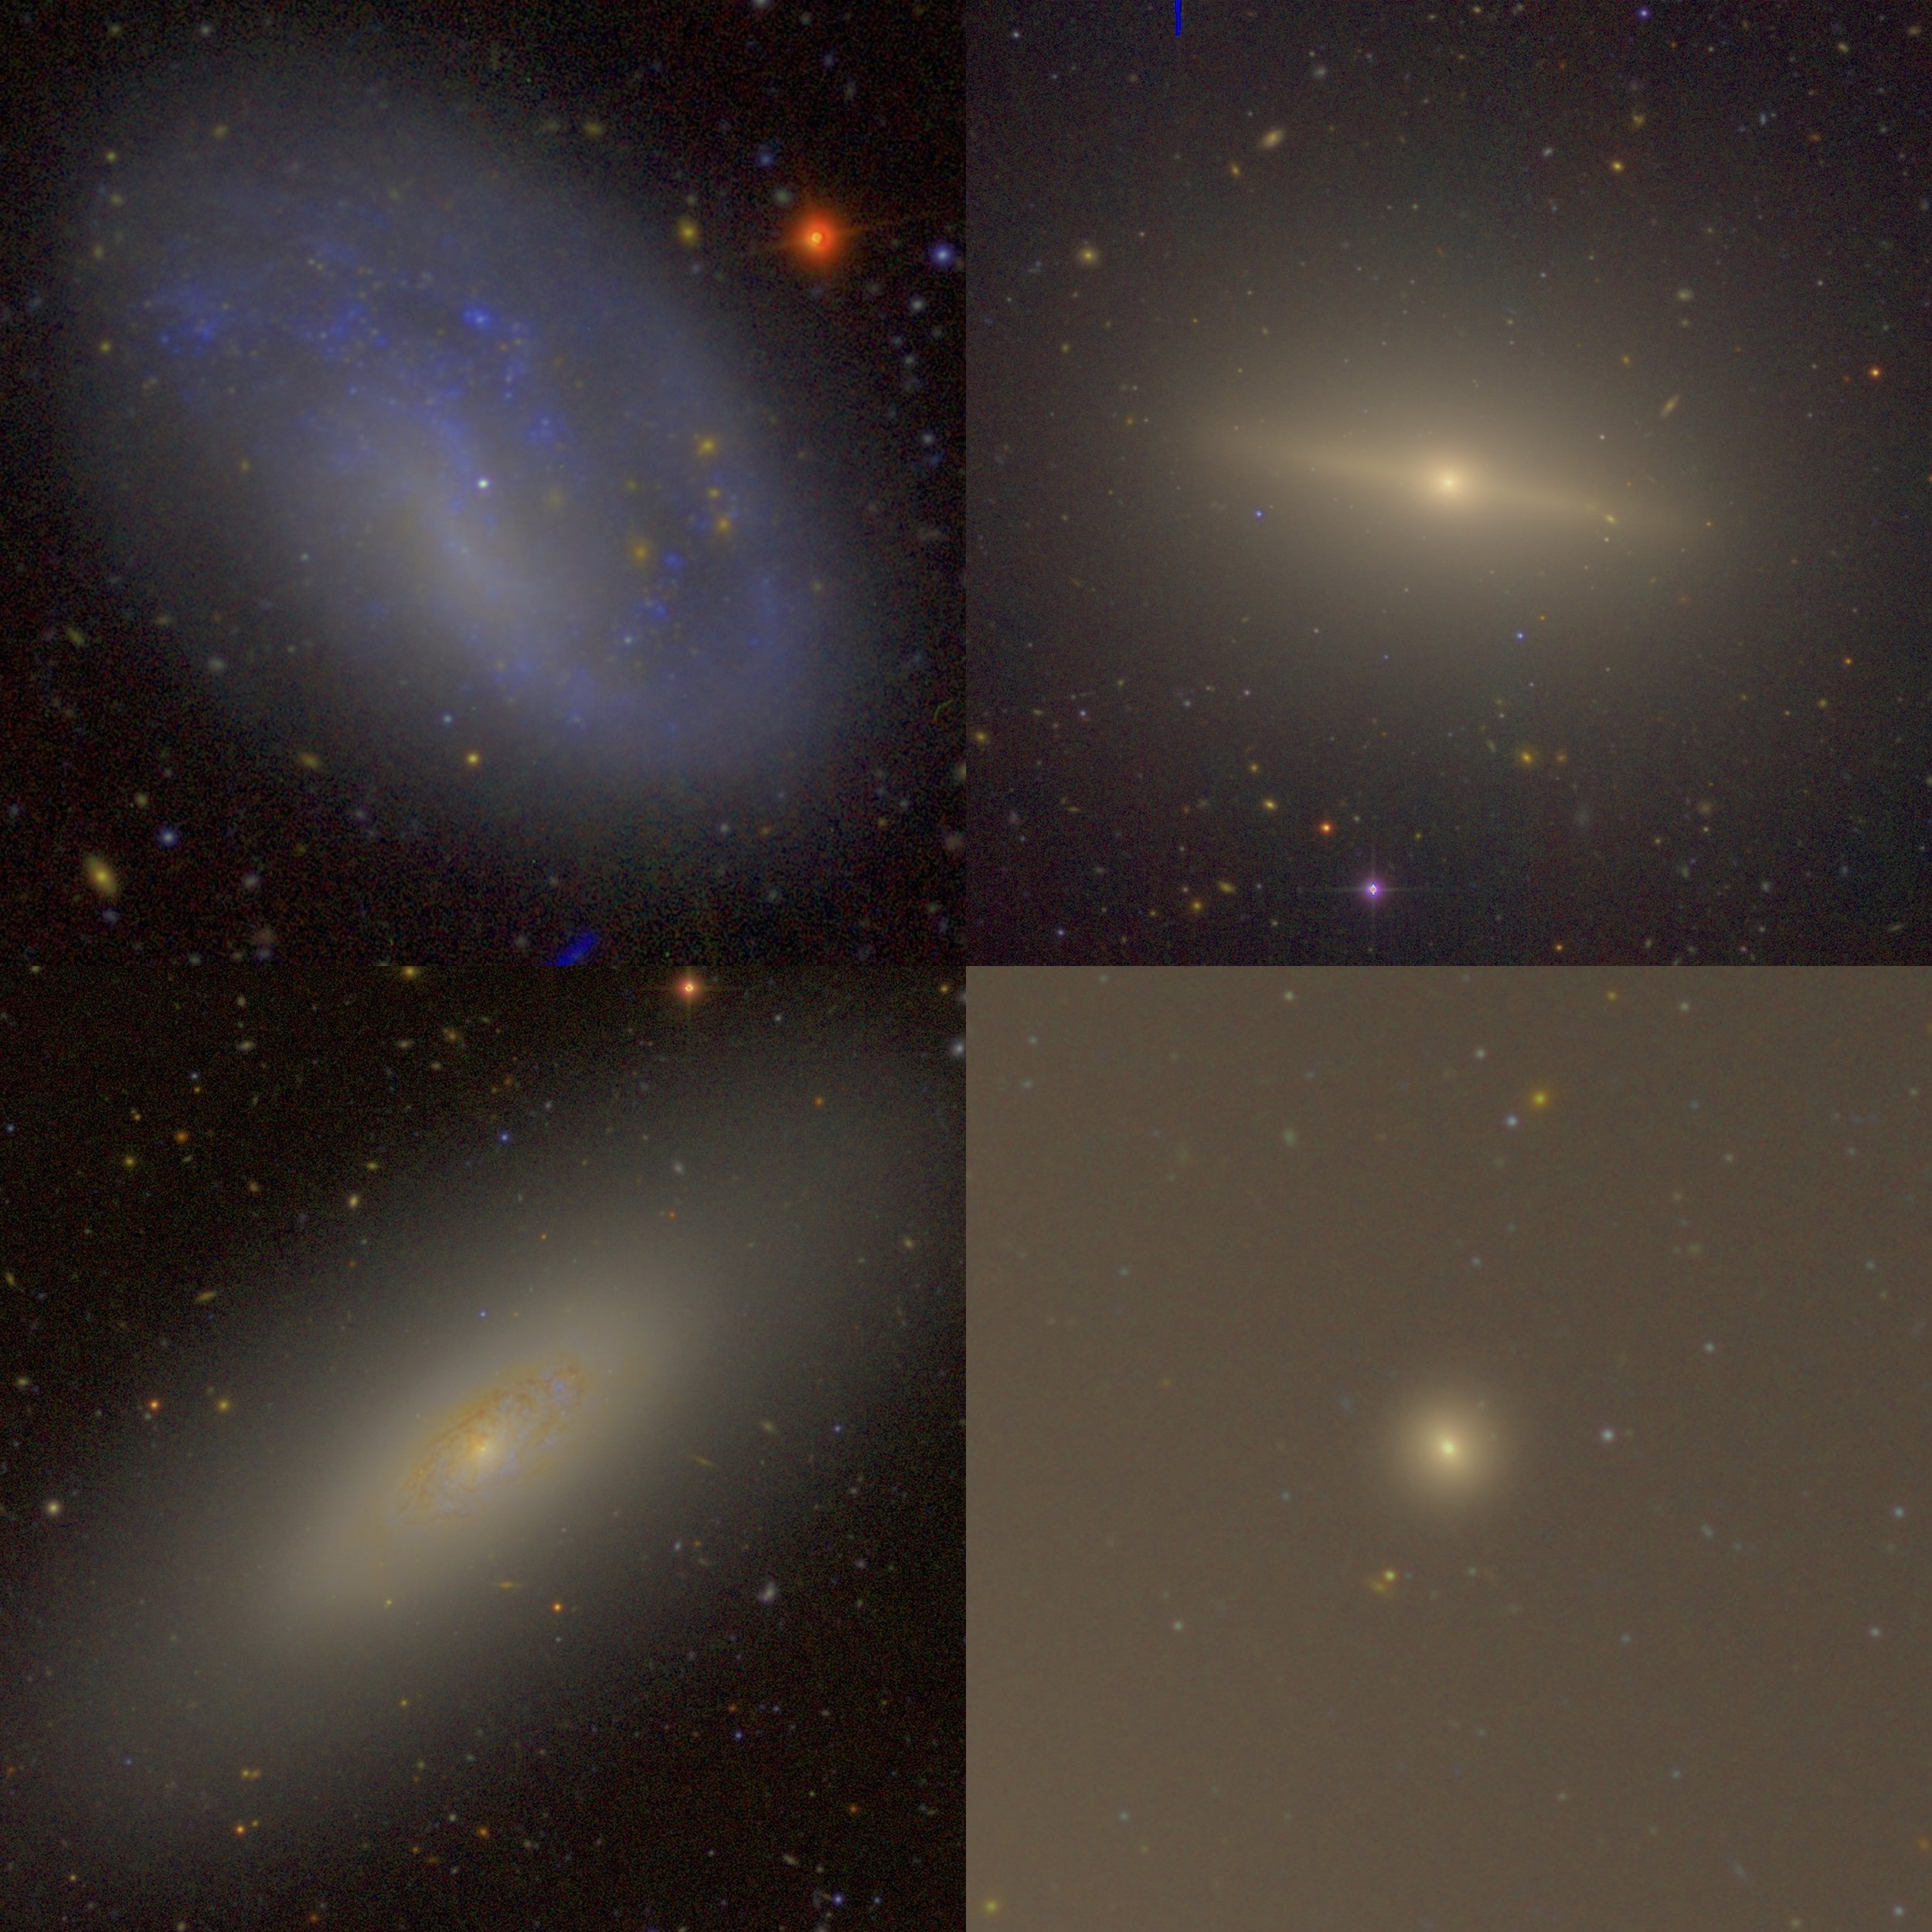 These are four diverse examples of galaxies in the Virgo Cluster that host nuclear star clusters at their centers (which is what I study but are too small and faint to be seen in these images). These color images are created by combining real images from the Canada-France-Hawaii Telescope taken with different filters. Part of my research involves understanding how such different galaxies can all form a nuclear star cluster, and what must happen in these galaxies for that to occur.